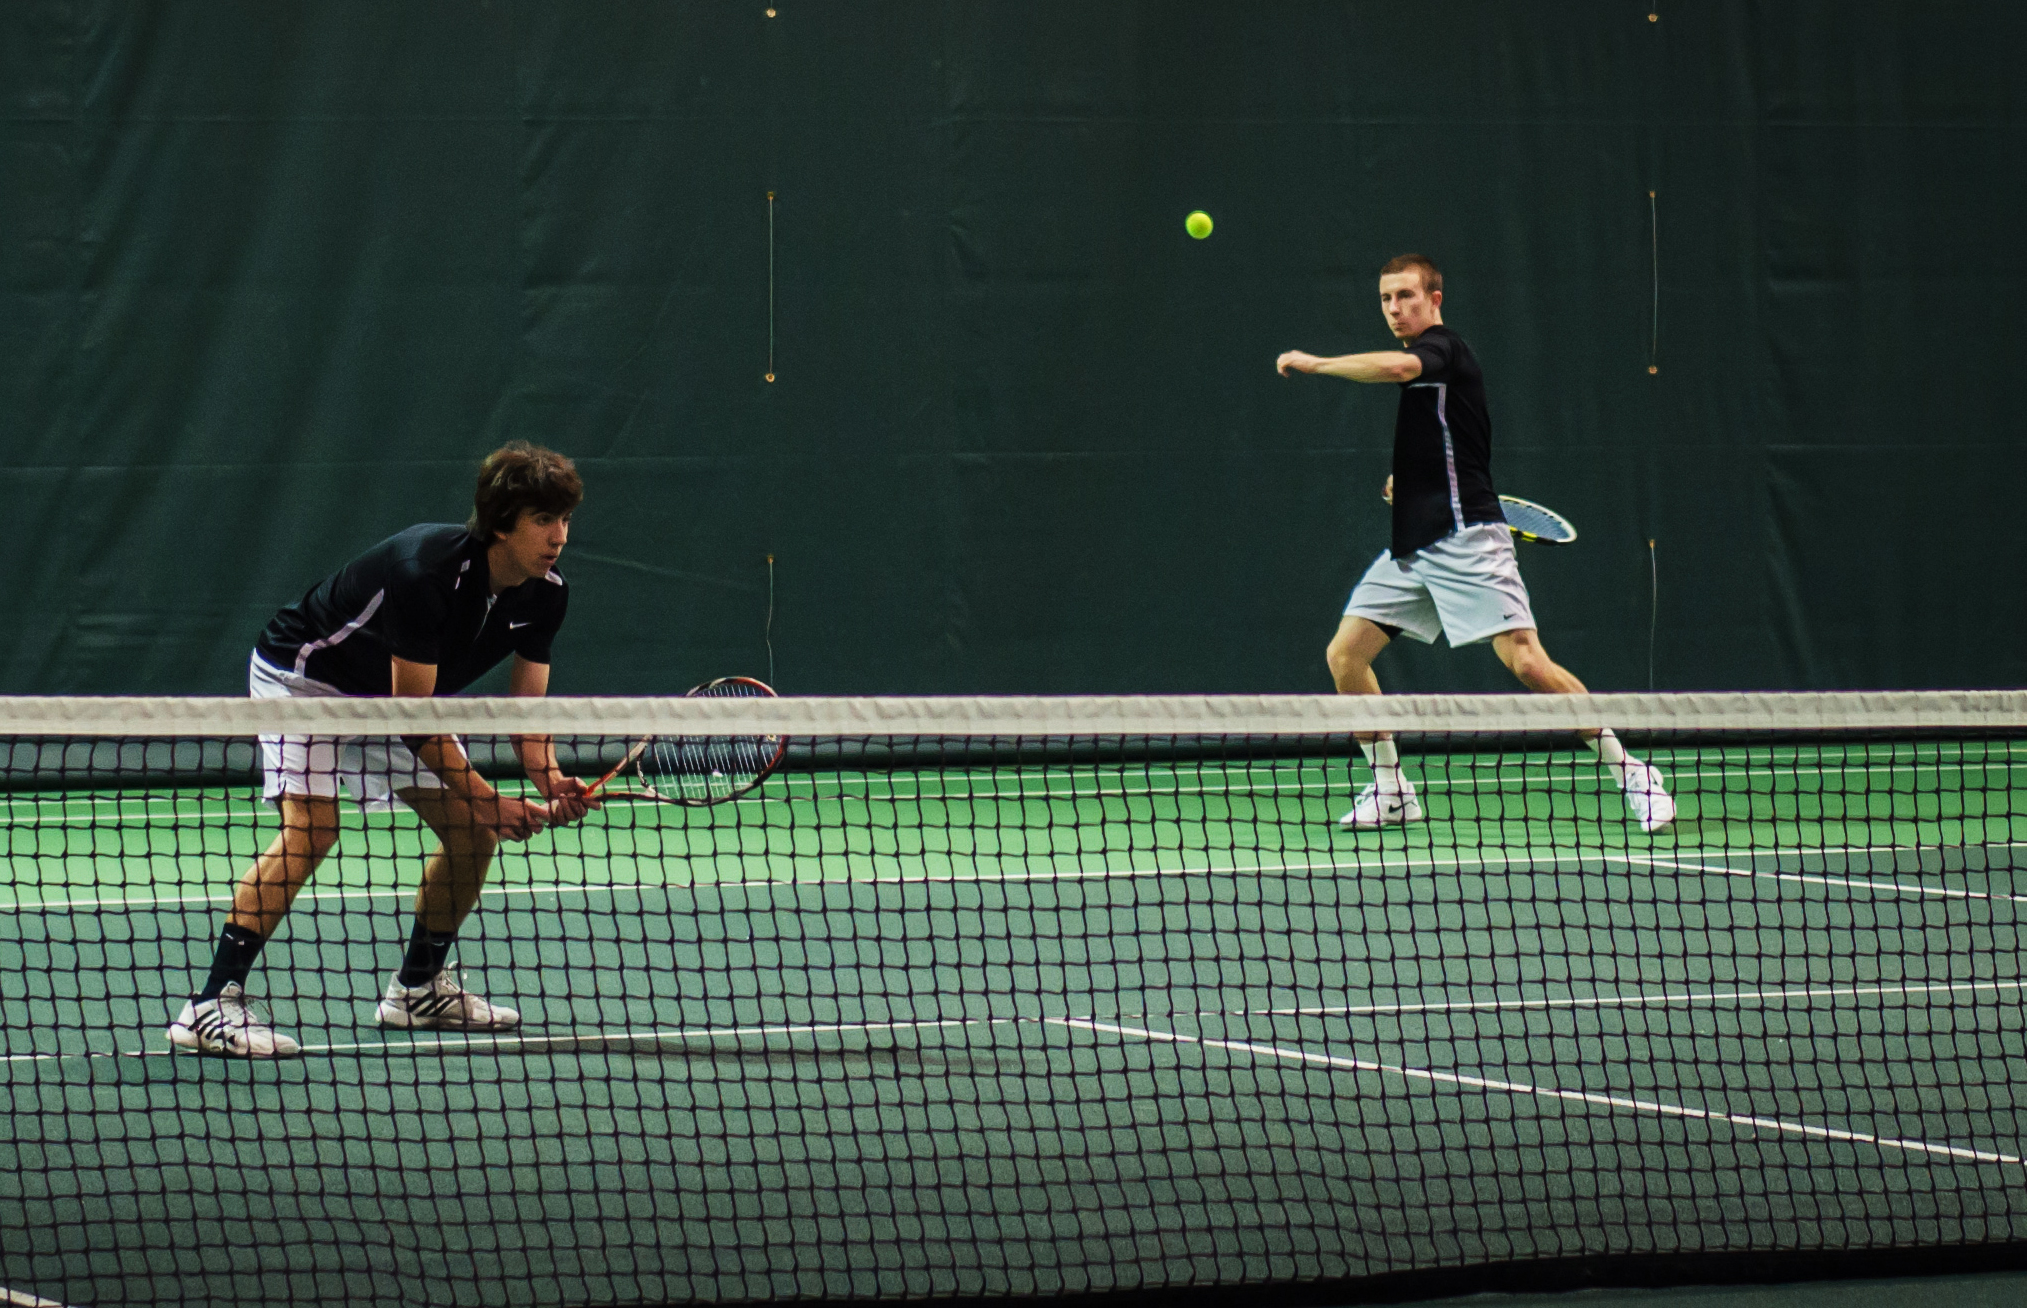 Ben Charney '15 and Rob Storrick '15 play doubles at the tourney against Wartburg on Sunday morning. Photograph by John Brady.